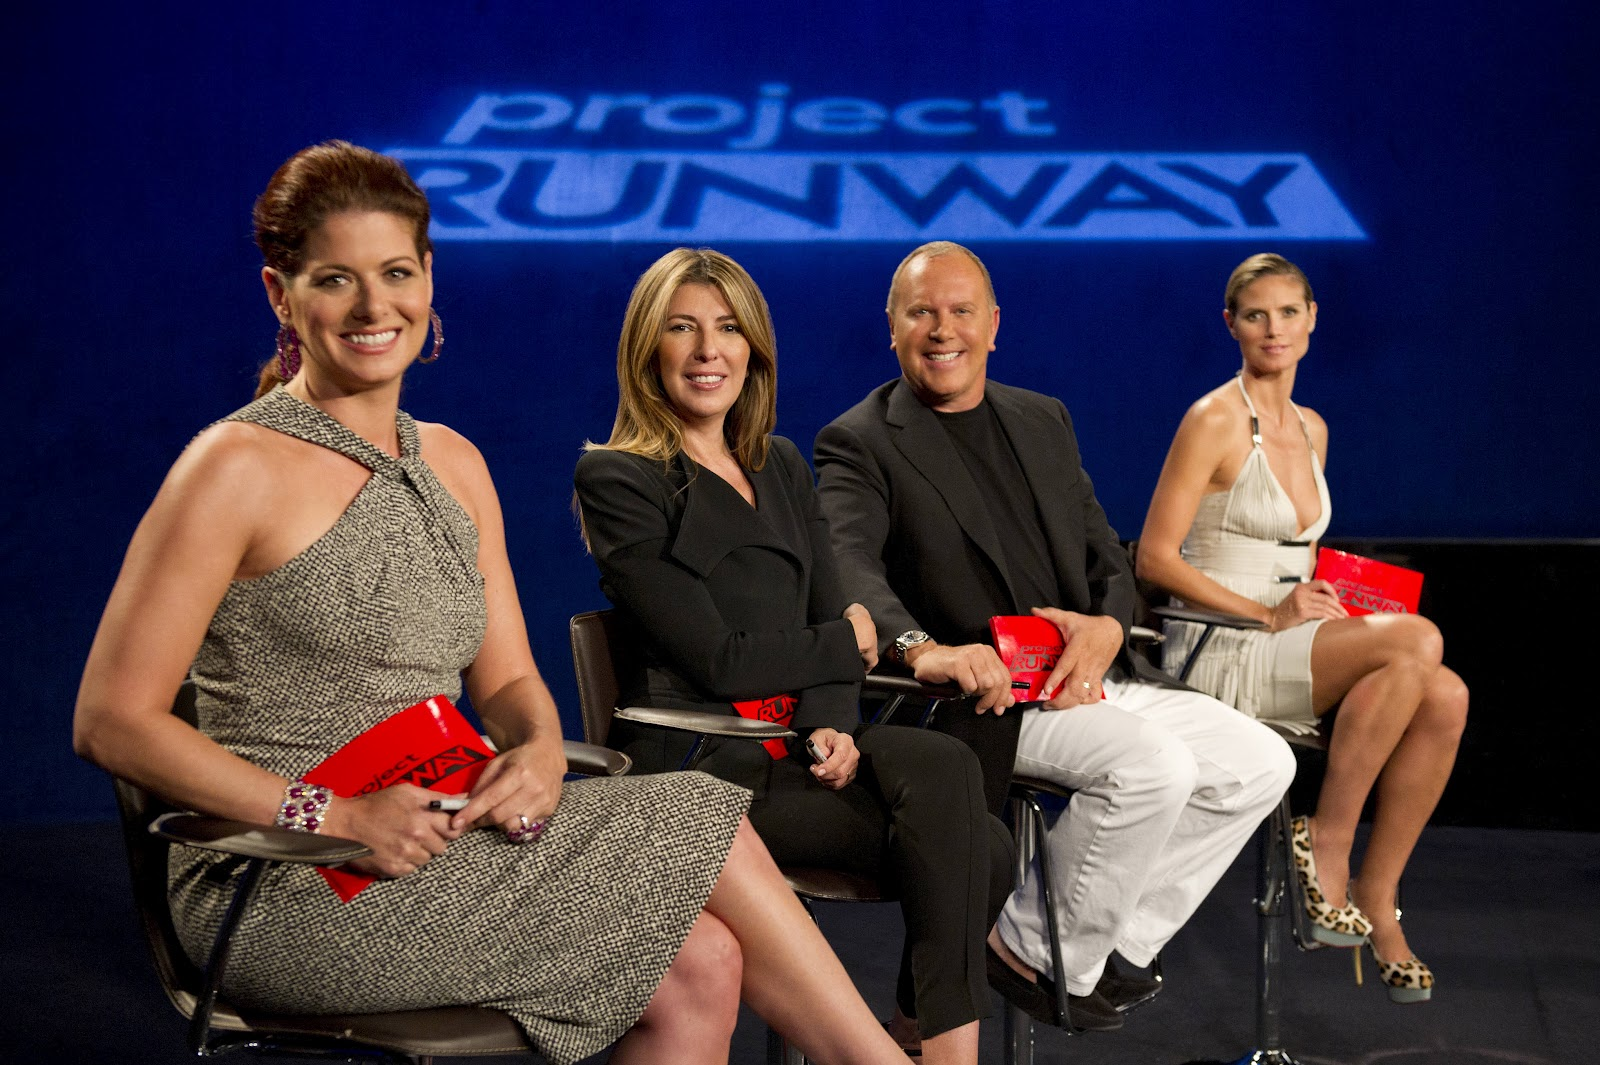 5f0f802613a Blogging Project Runway - The Original Project Runway Fan Blog ...